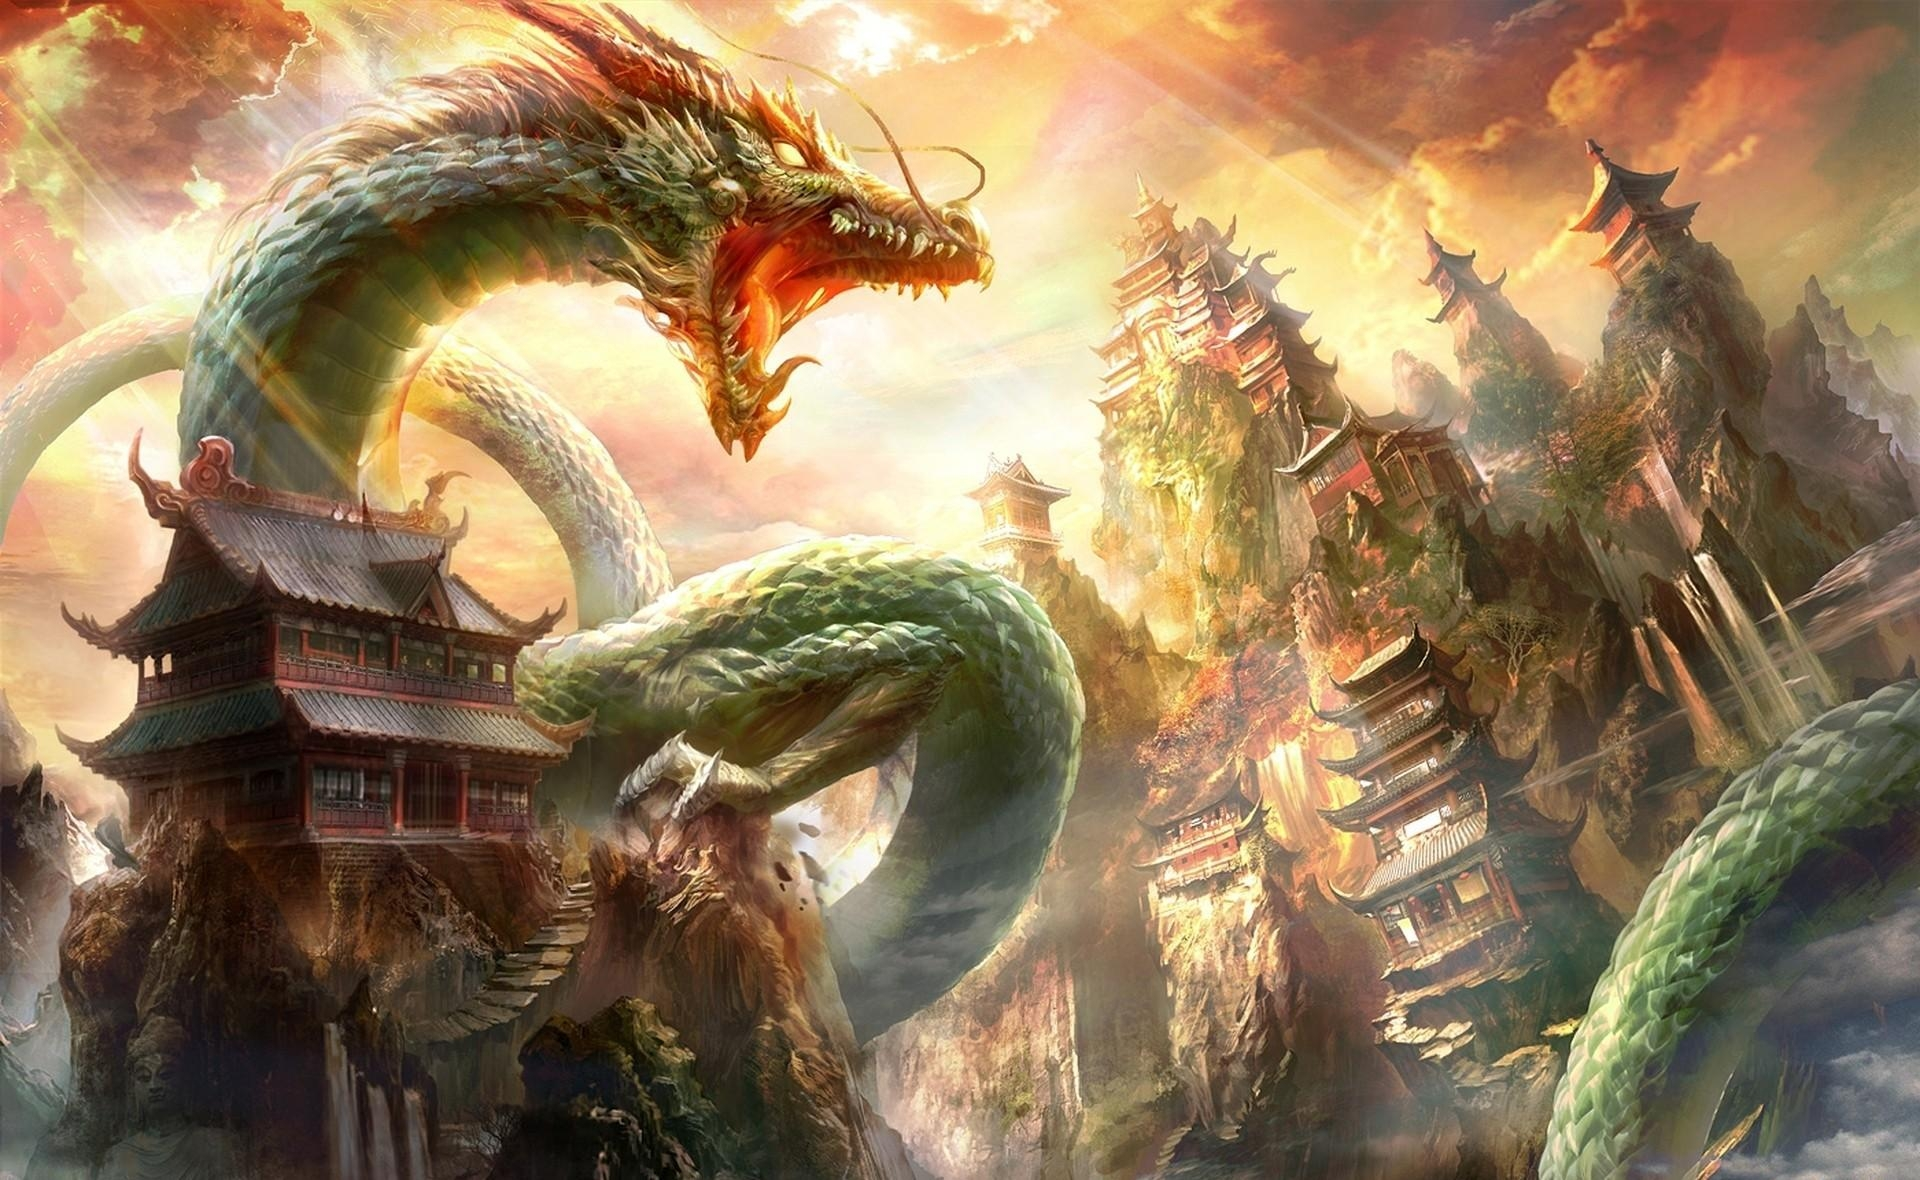 67844 download wallpaper Houses, Fantasy, Sky, Beams, Rays, To Fall, Mouth, Dragon screensavers and pictures for free